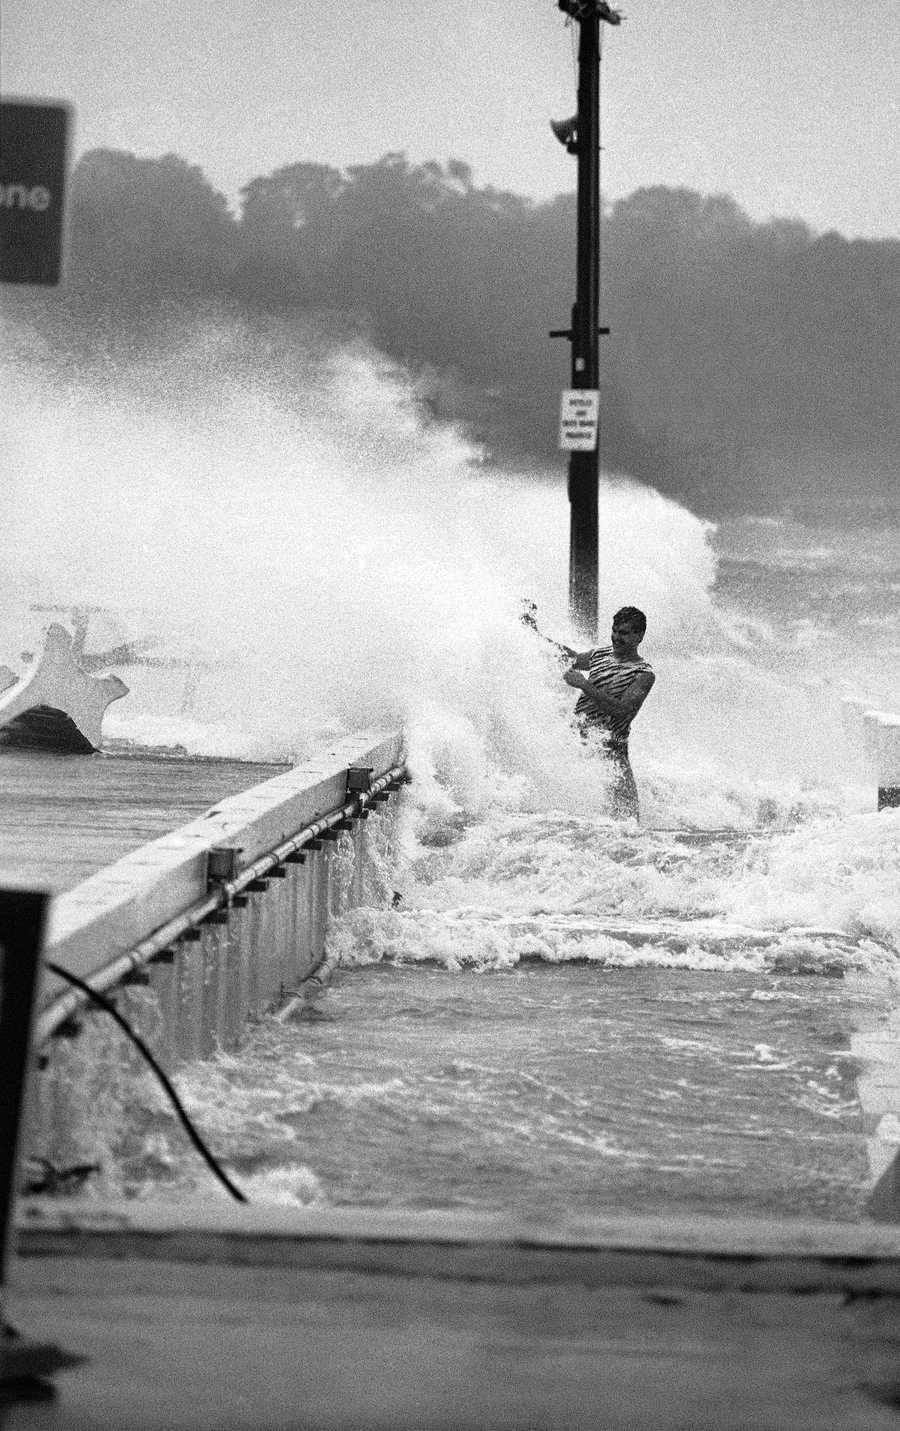 An unidentified man is hit by a wave as he walked on the side of a pier in New London, Connecticut on Friday, Sept. 28, 1985, during the height of Hurricane Gloria. The hurricane swept into Connecticut with winds of 90 miles per hour, but damage was said to be minimal.